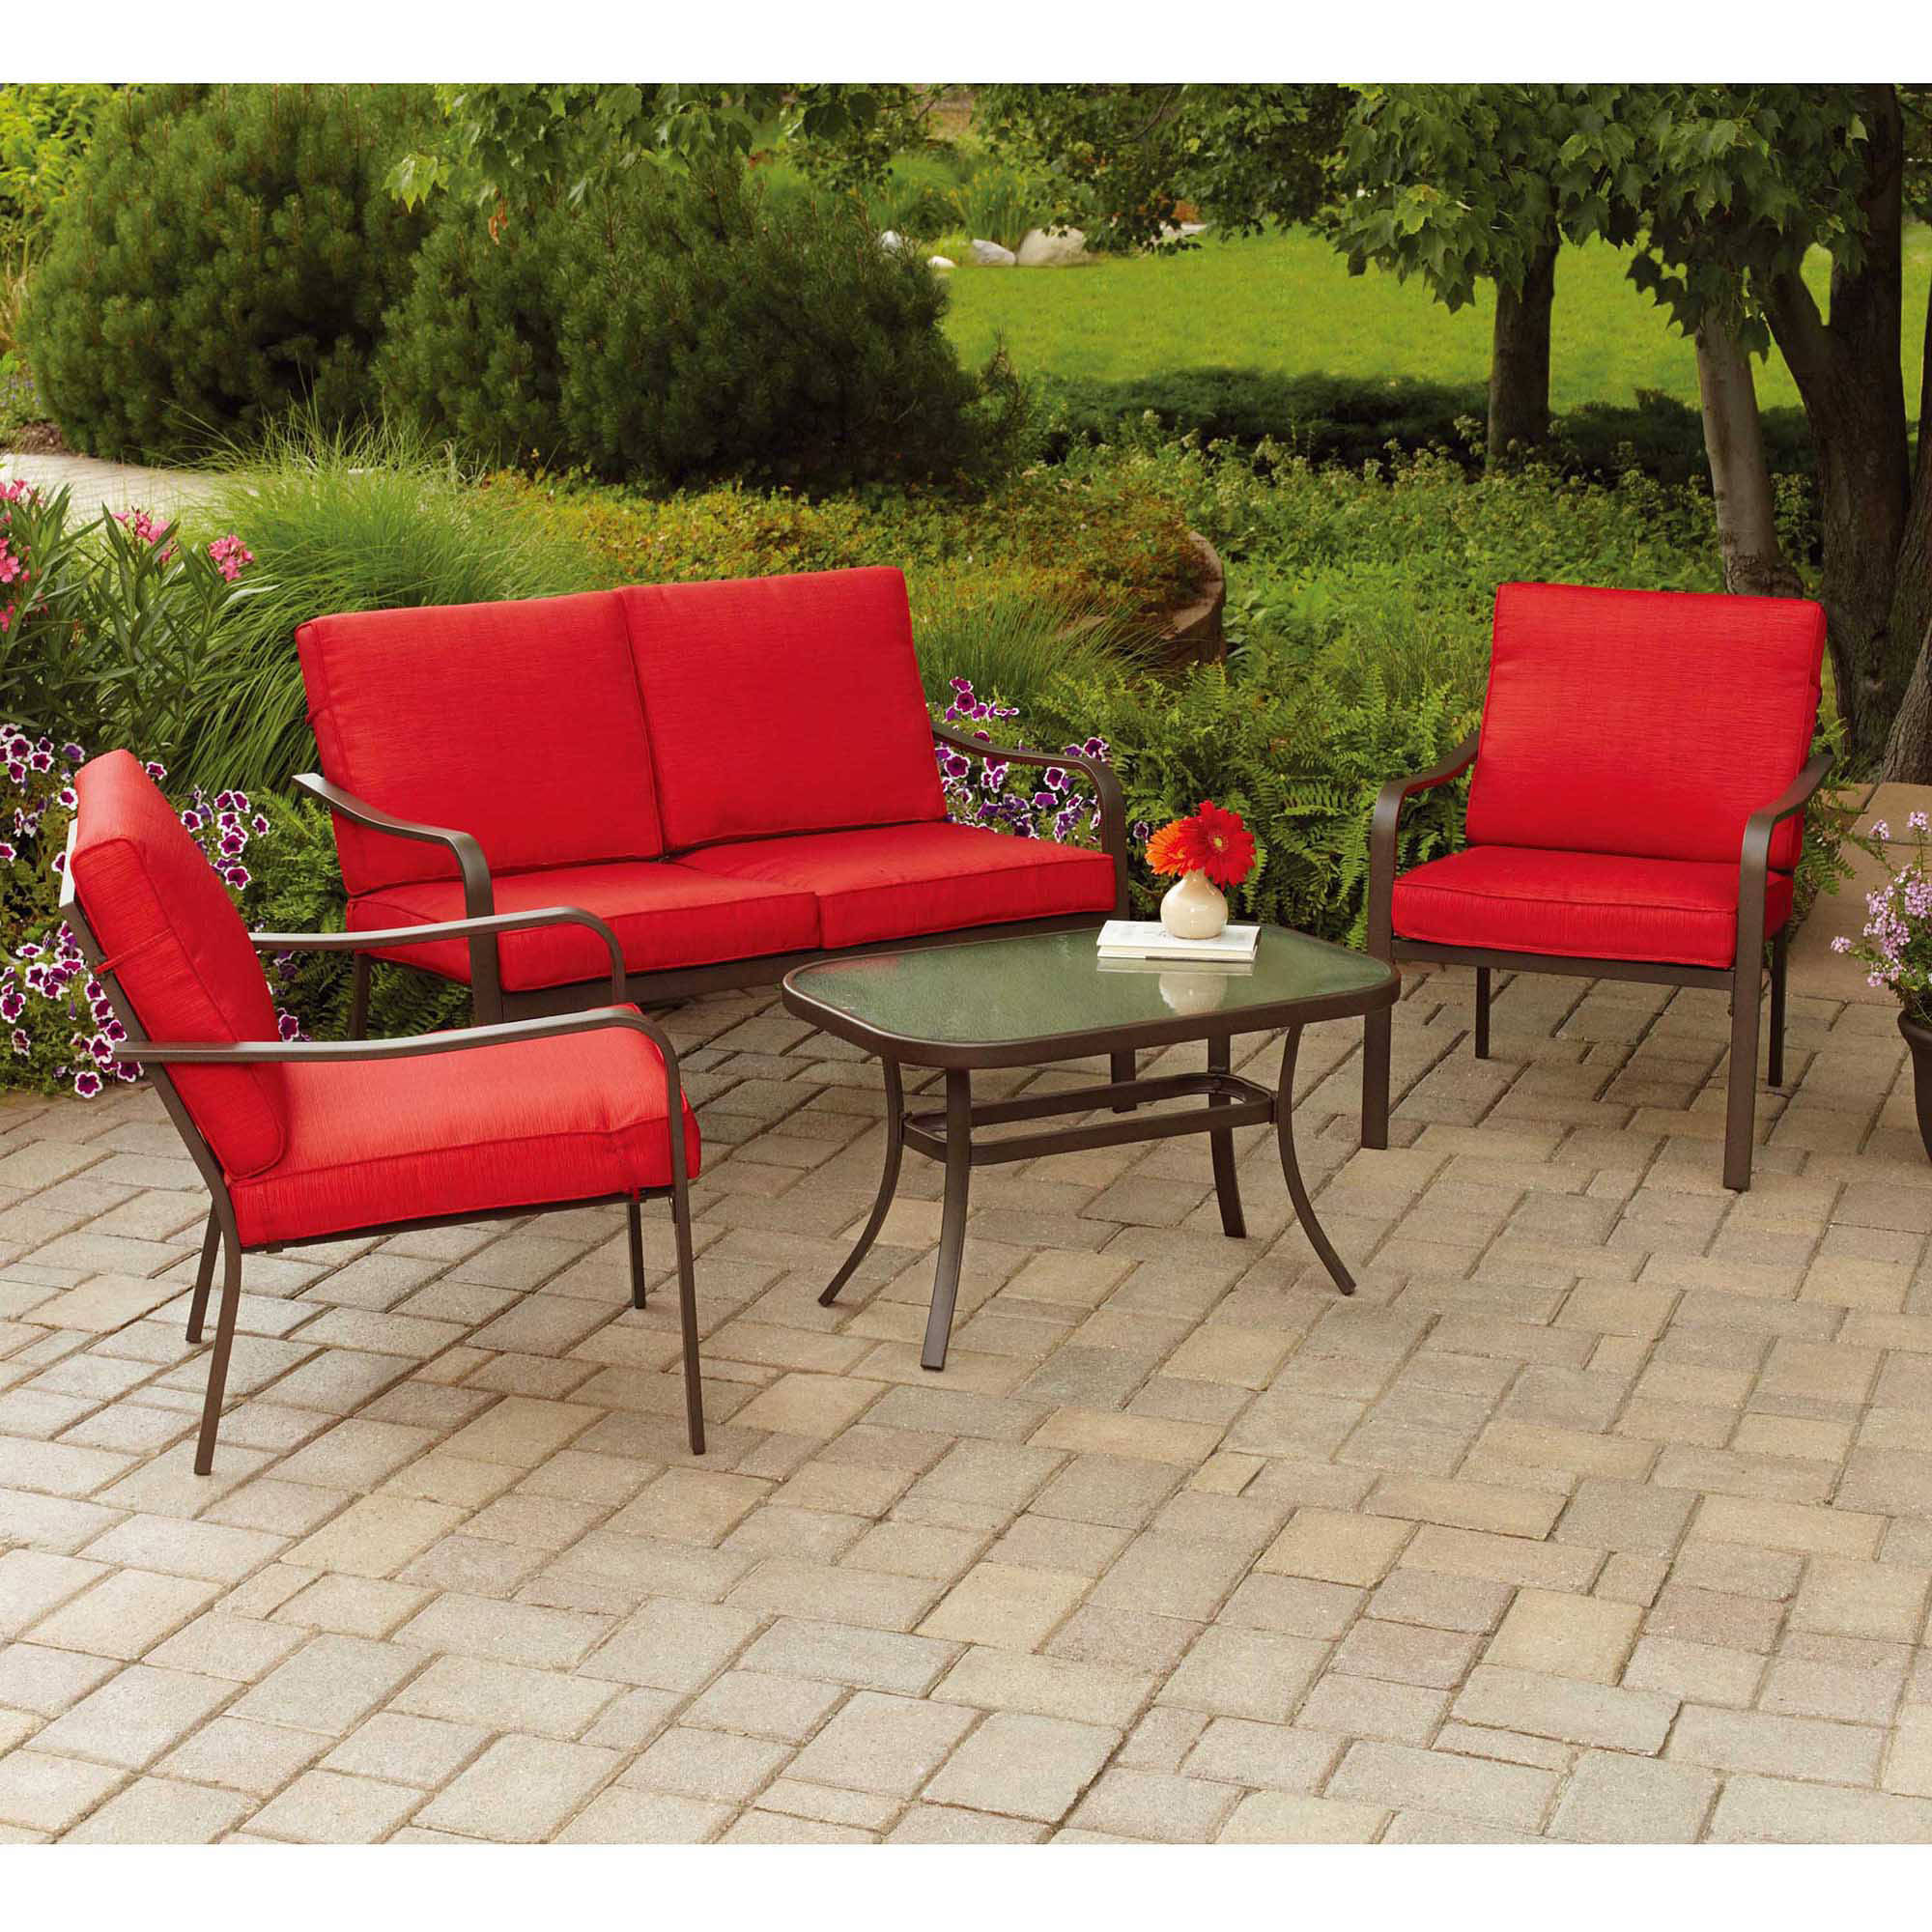 Superieur Mainstays Stanton Cushioned 4 Piece Patio Conversation Set, Seats 4 ...